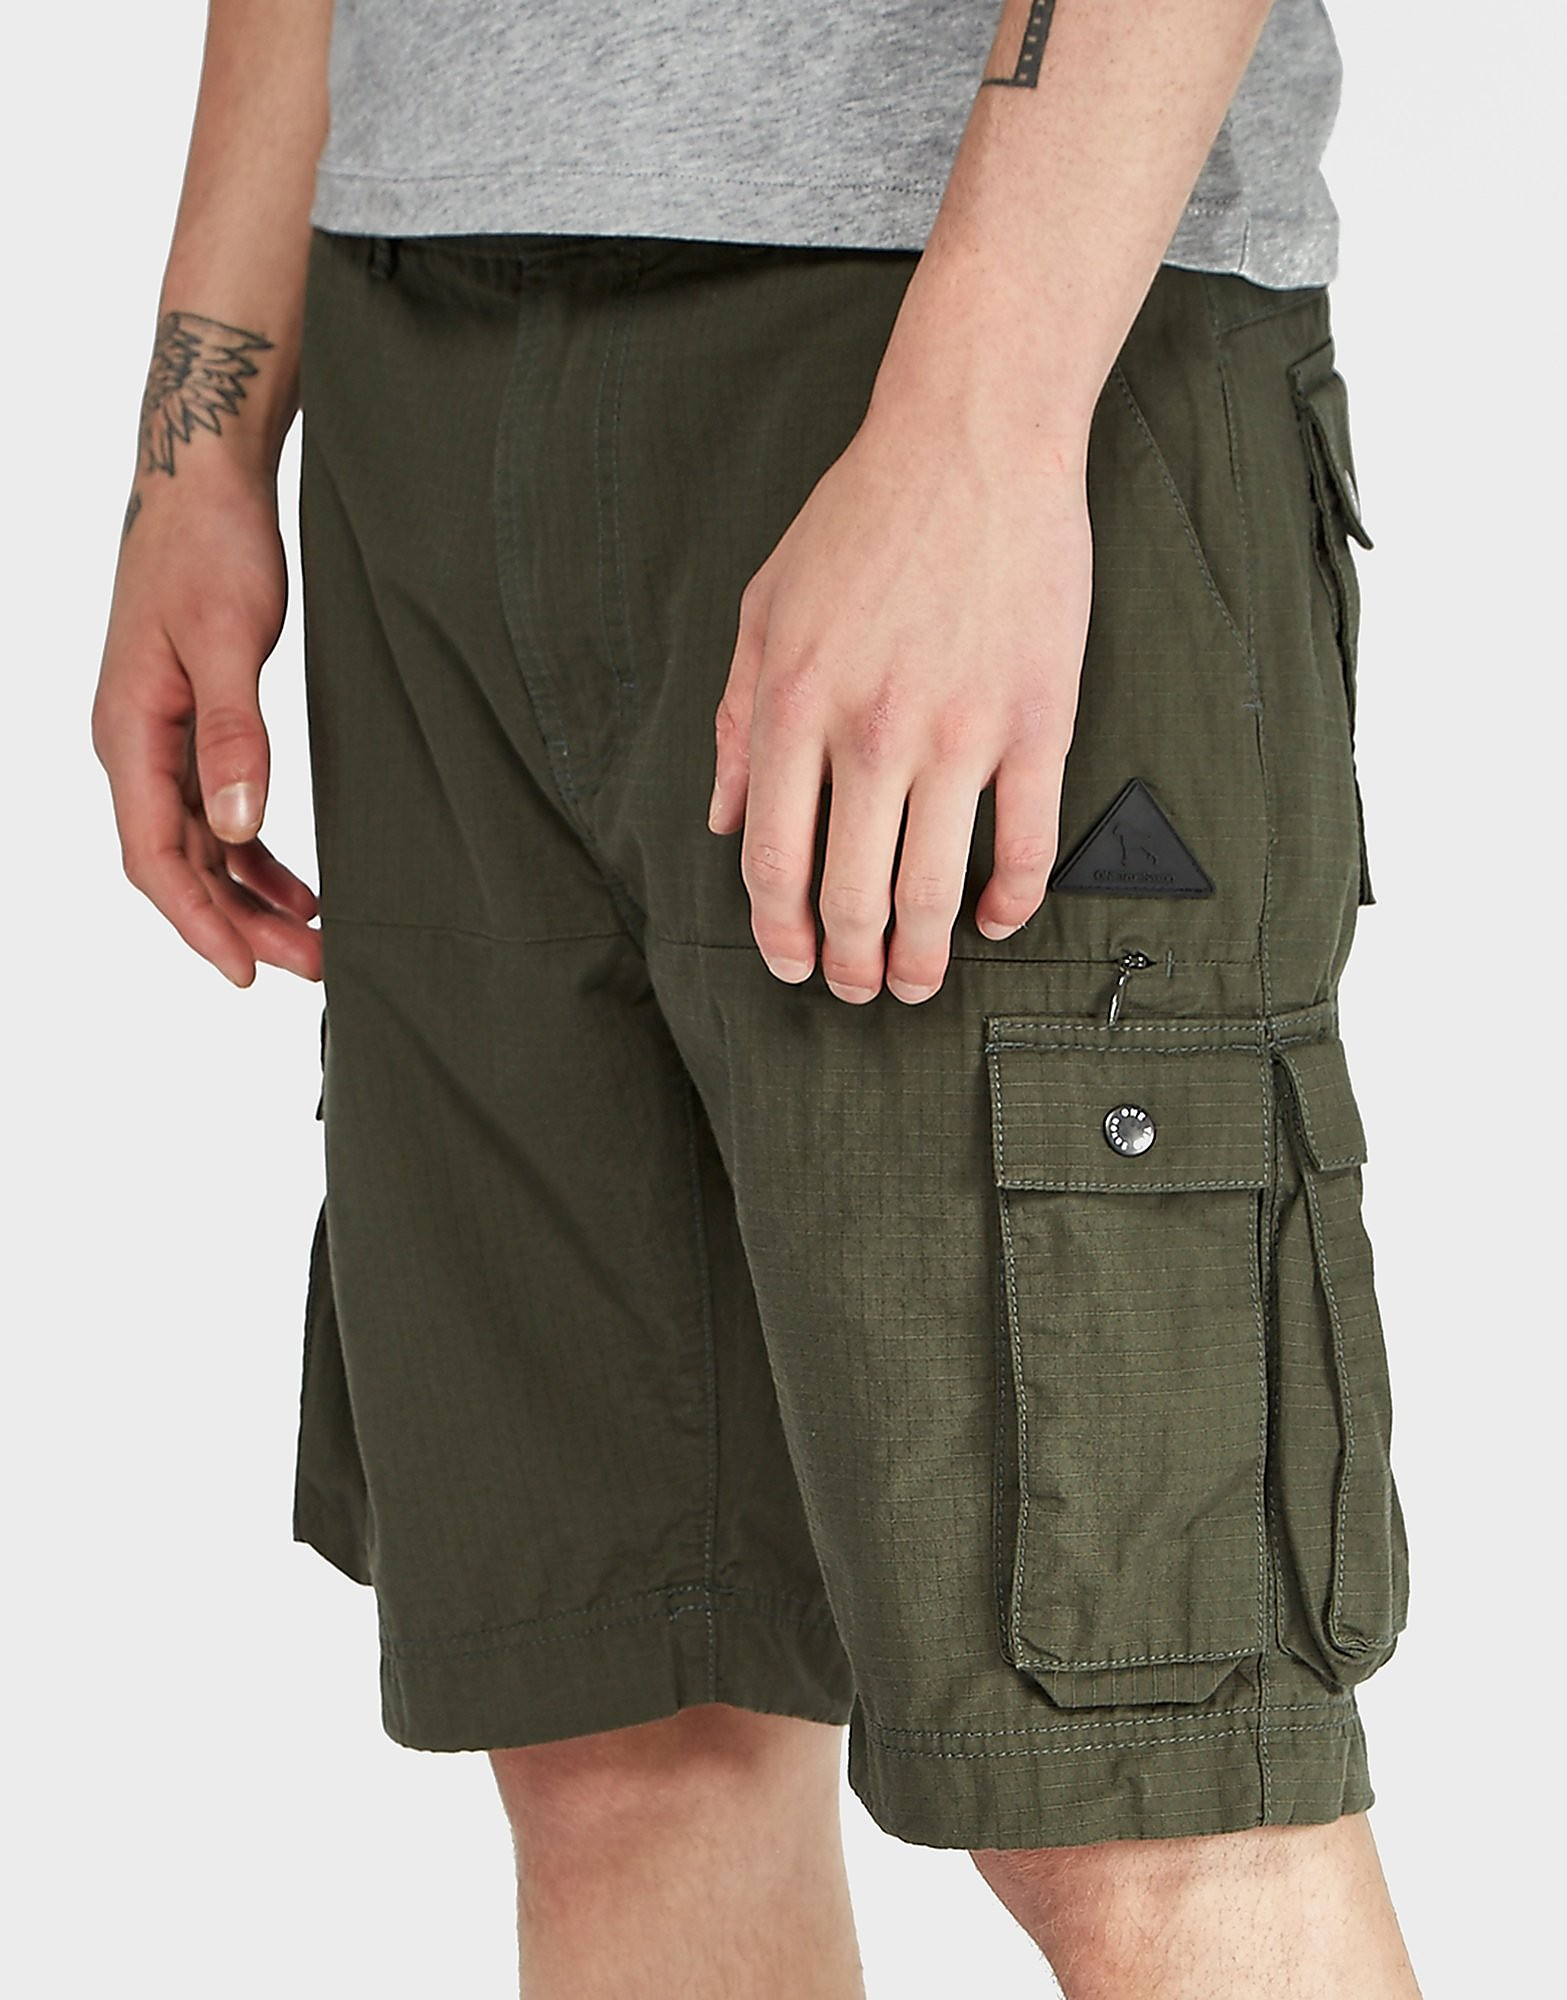 One True Saxon Elberton Cargo Short - Exclusive